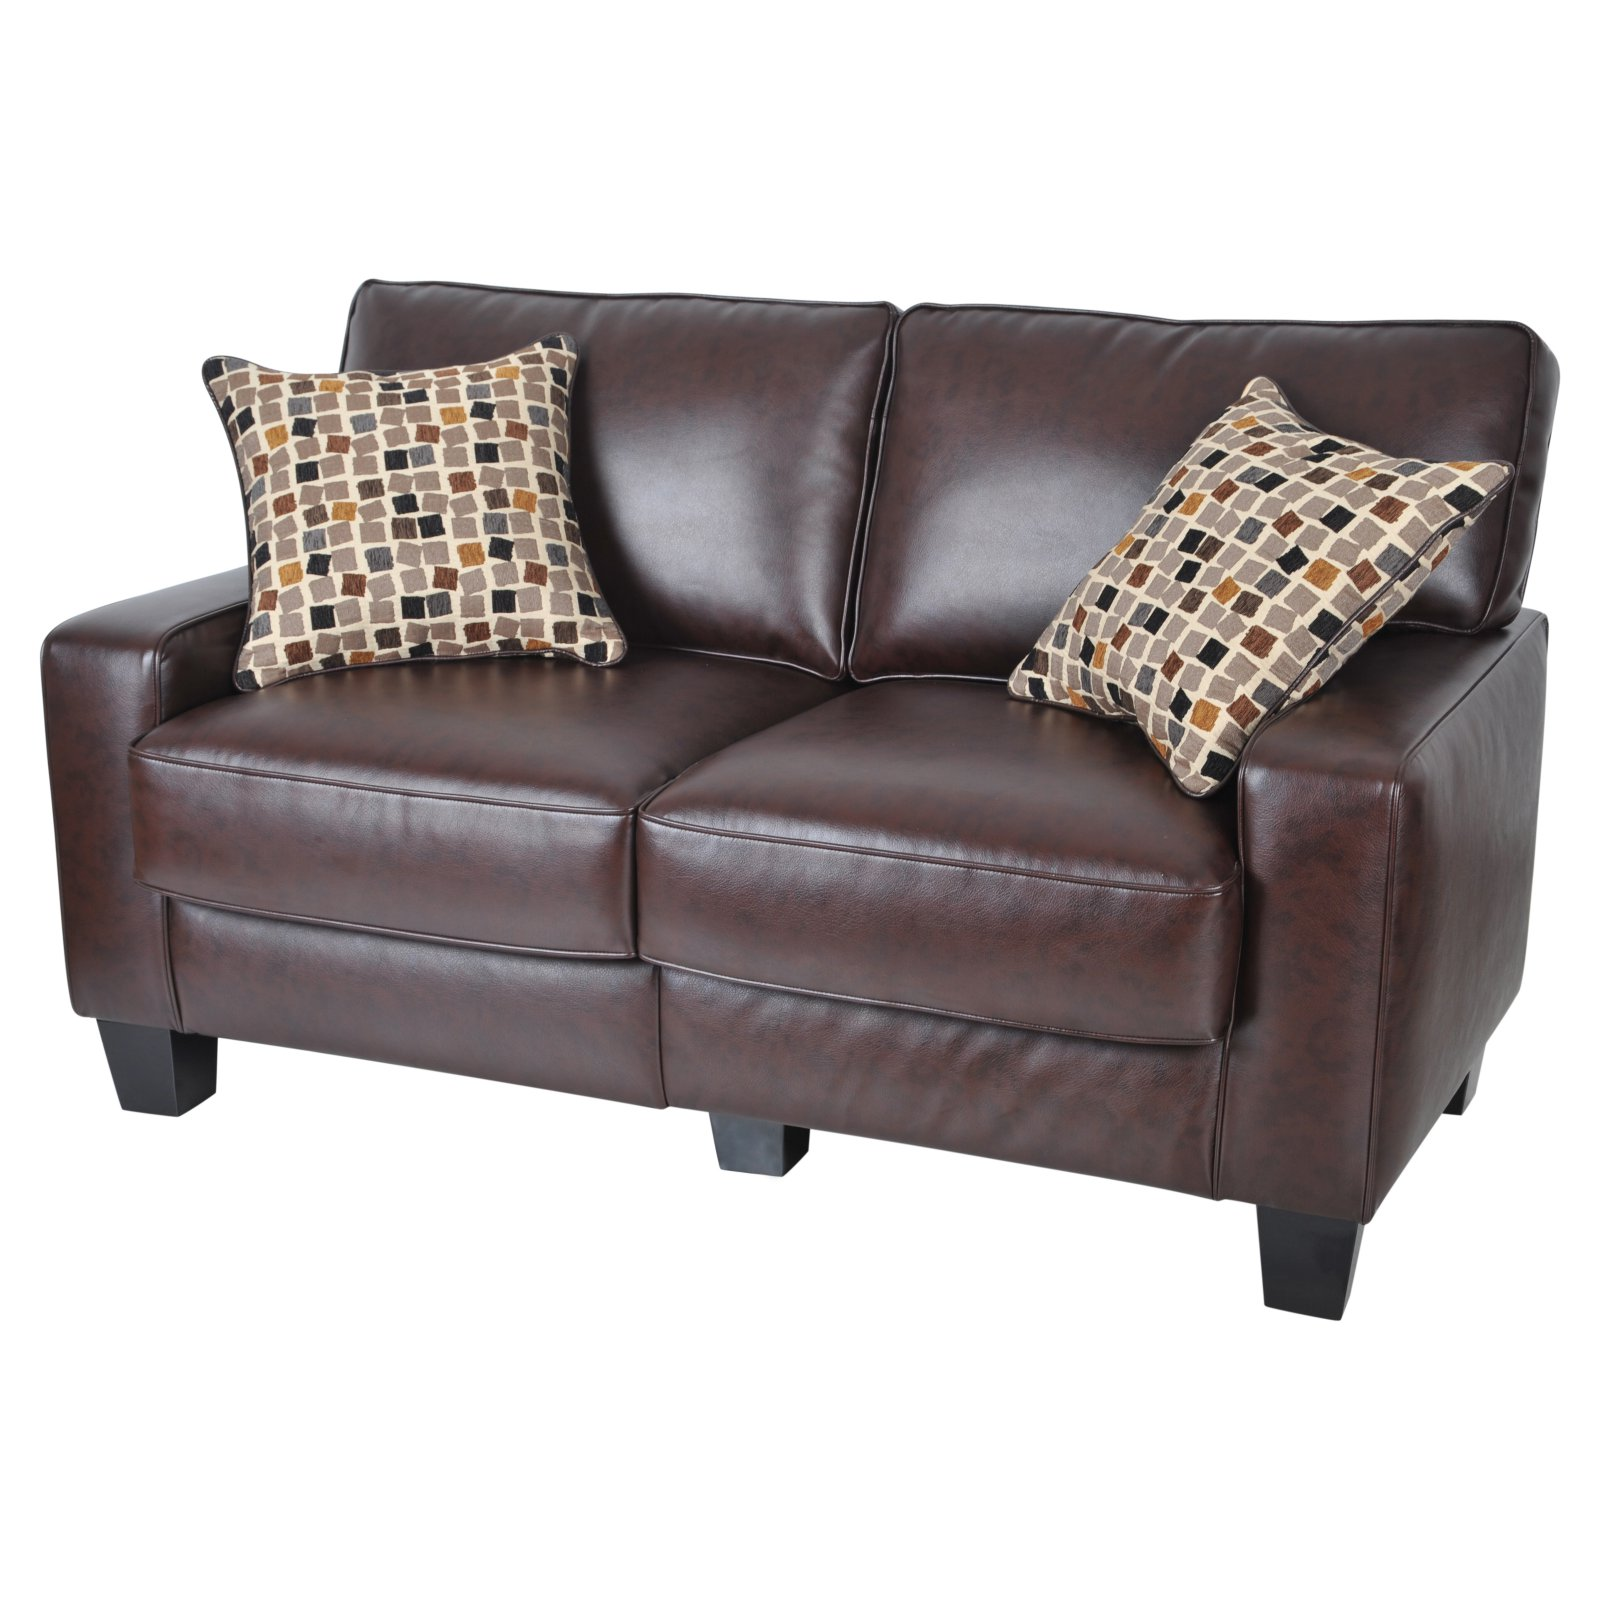 Serta Rta Palisades Collection 61 Loveseat Multiple Colors